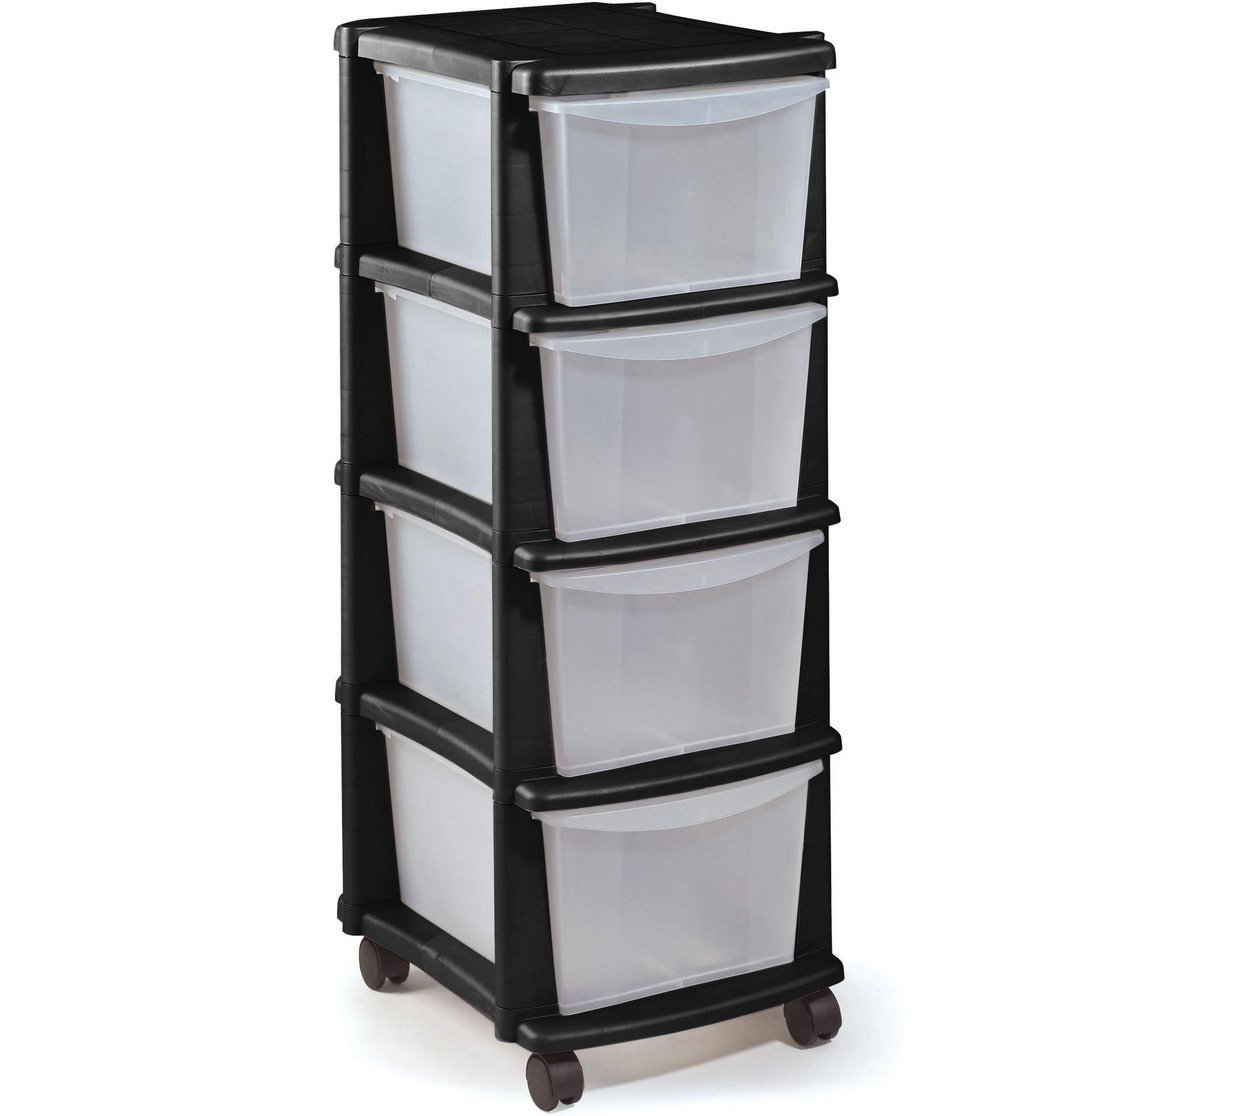 ChoicefullBargain 4 Drawer Plastic Tower HOME Keter Storage Unit - Black.